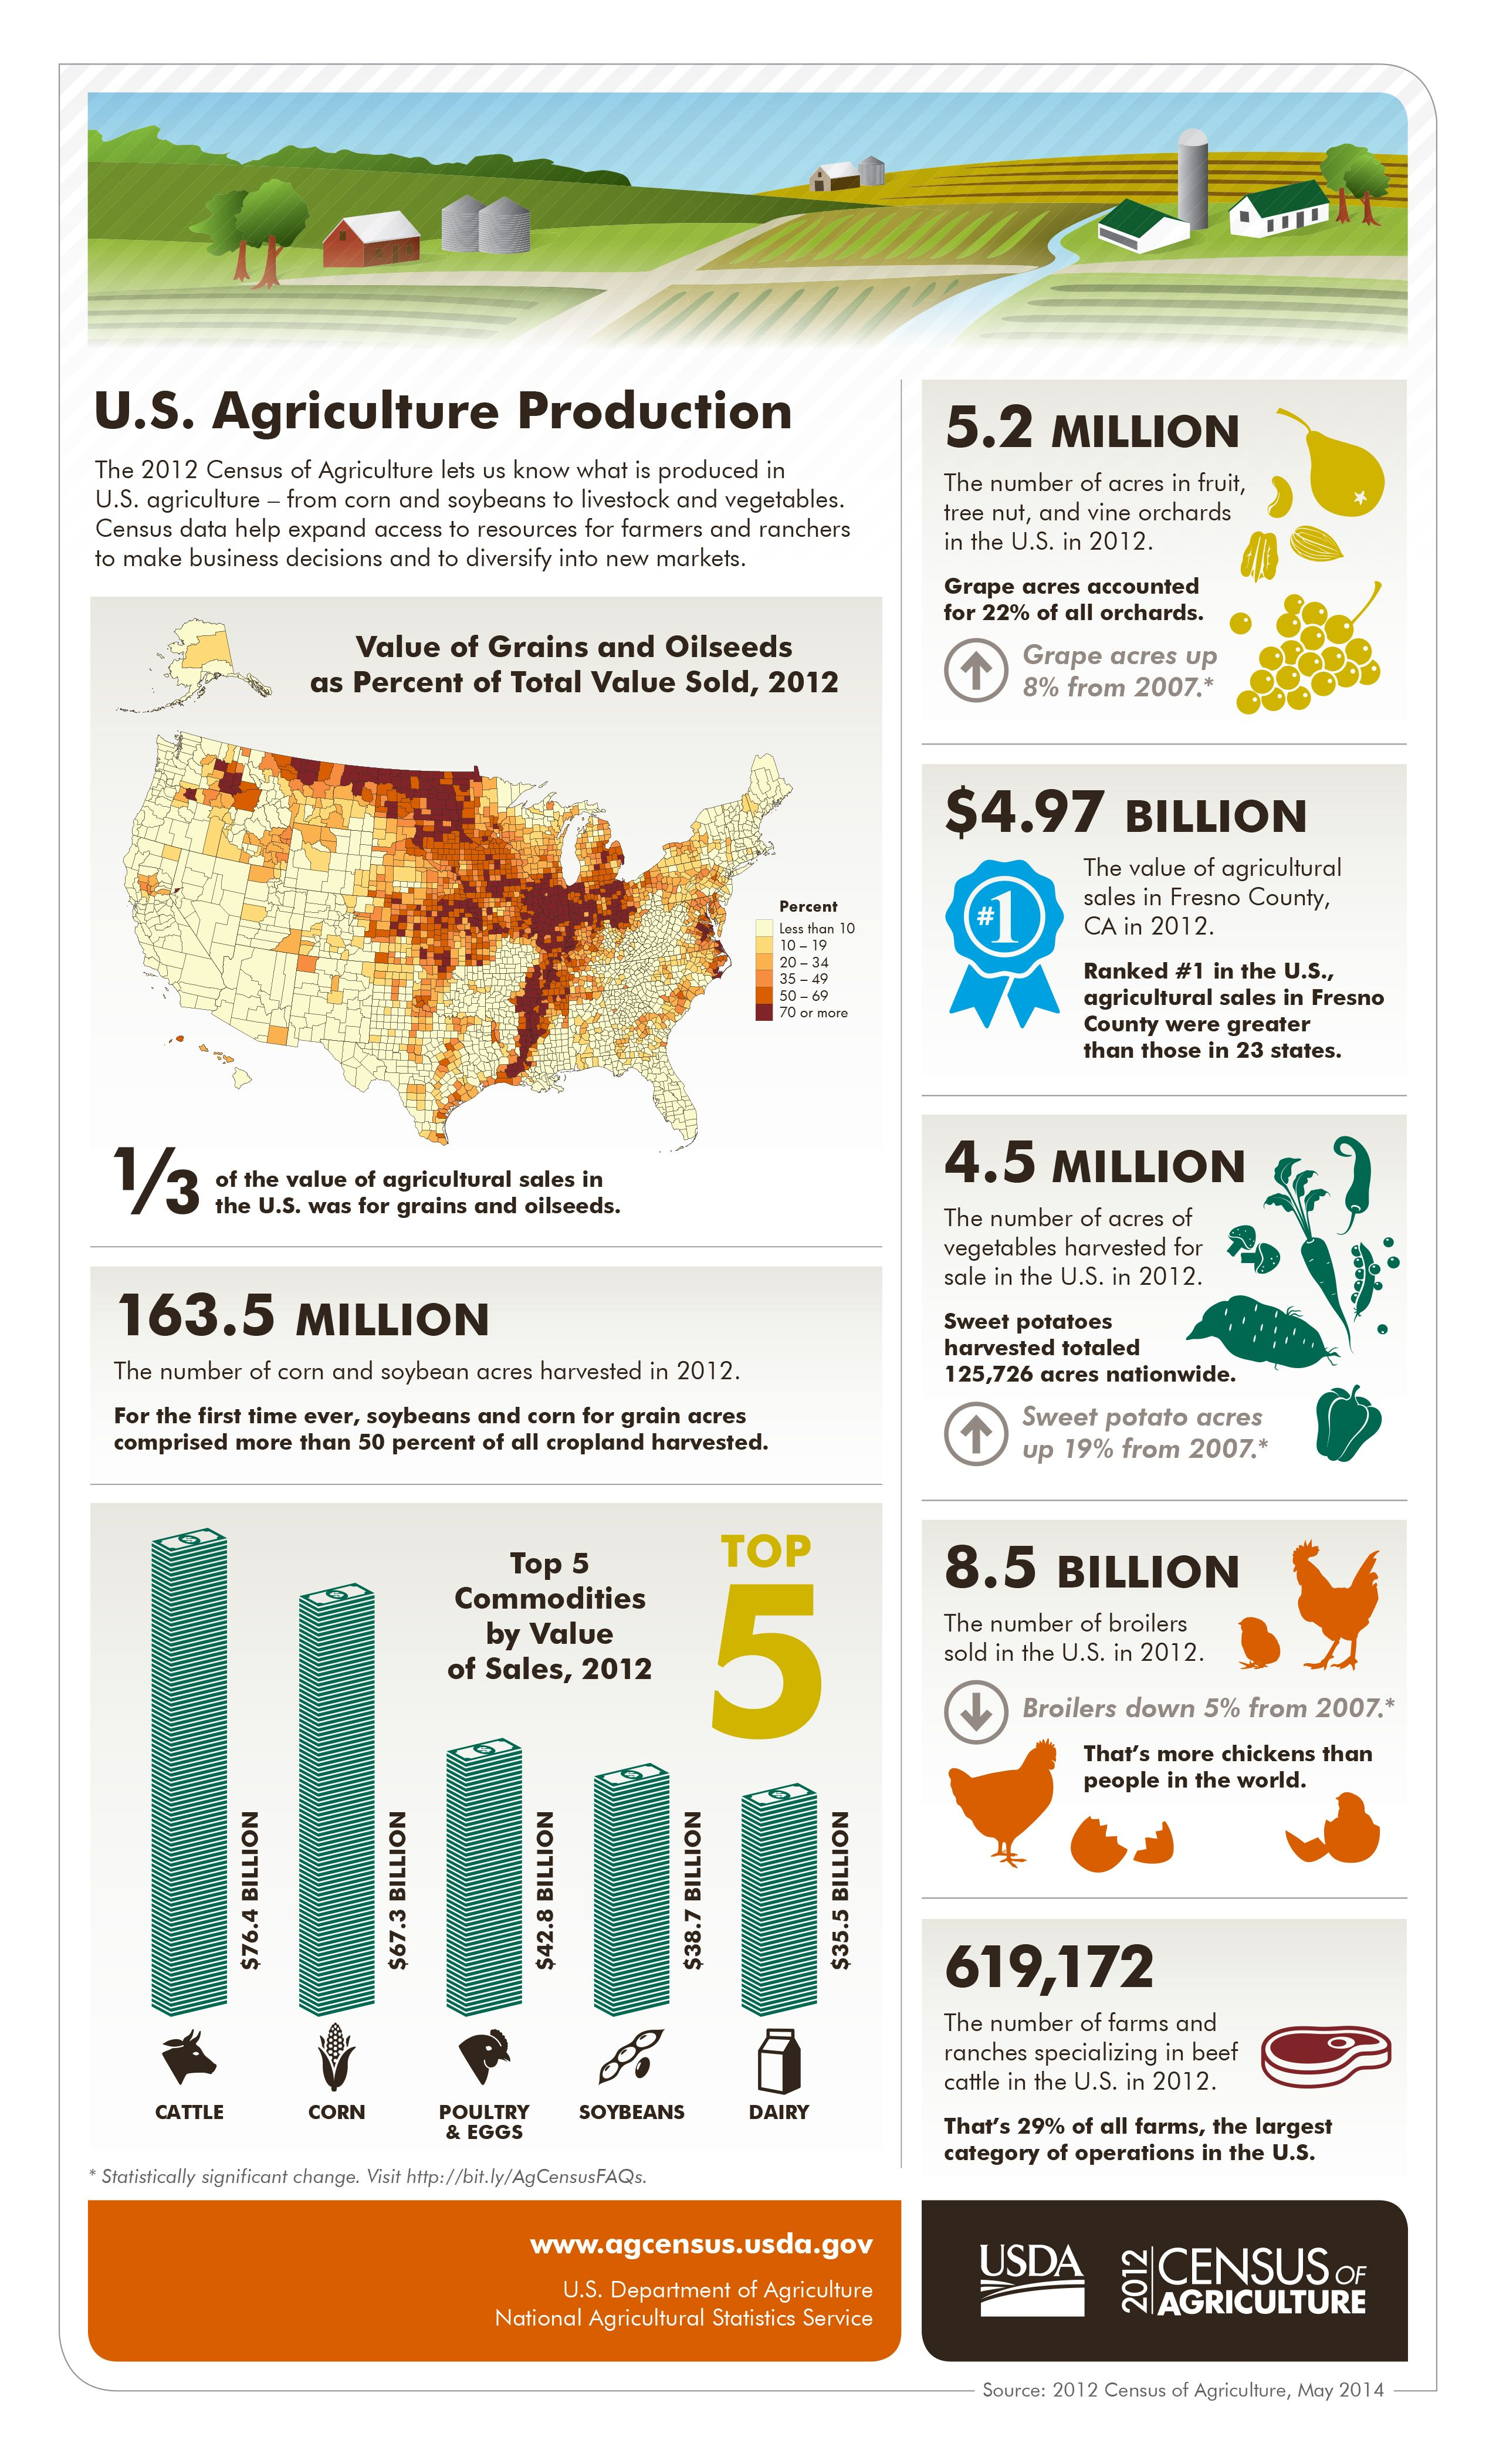 USDA/NASS - Infographic of U.S. Agriculture Production